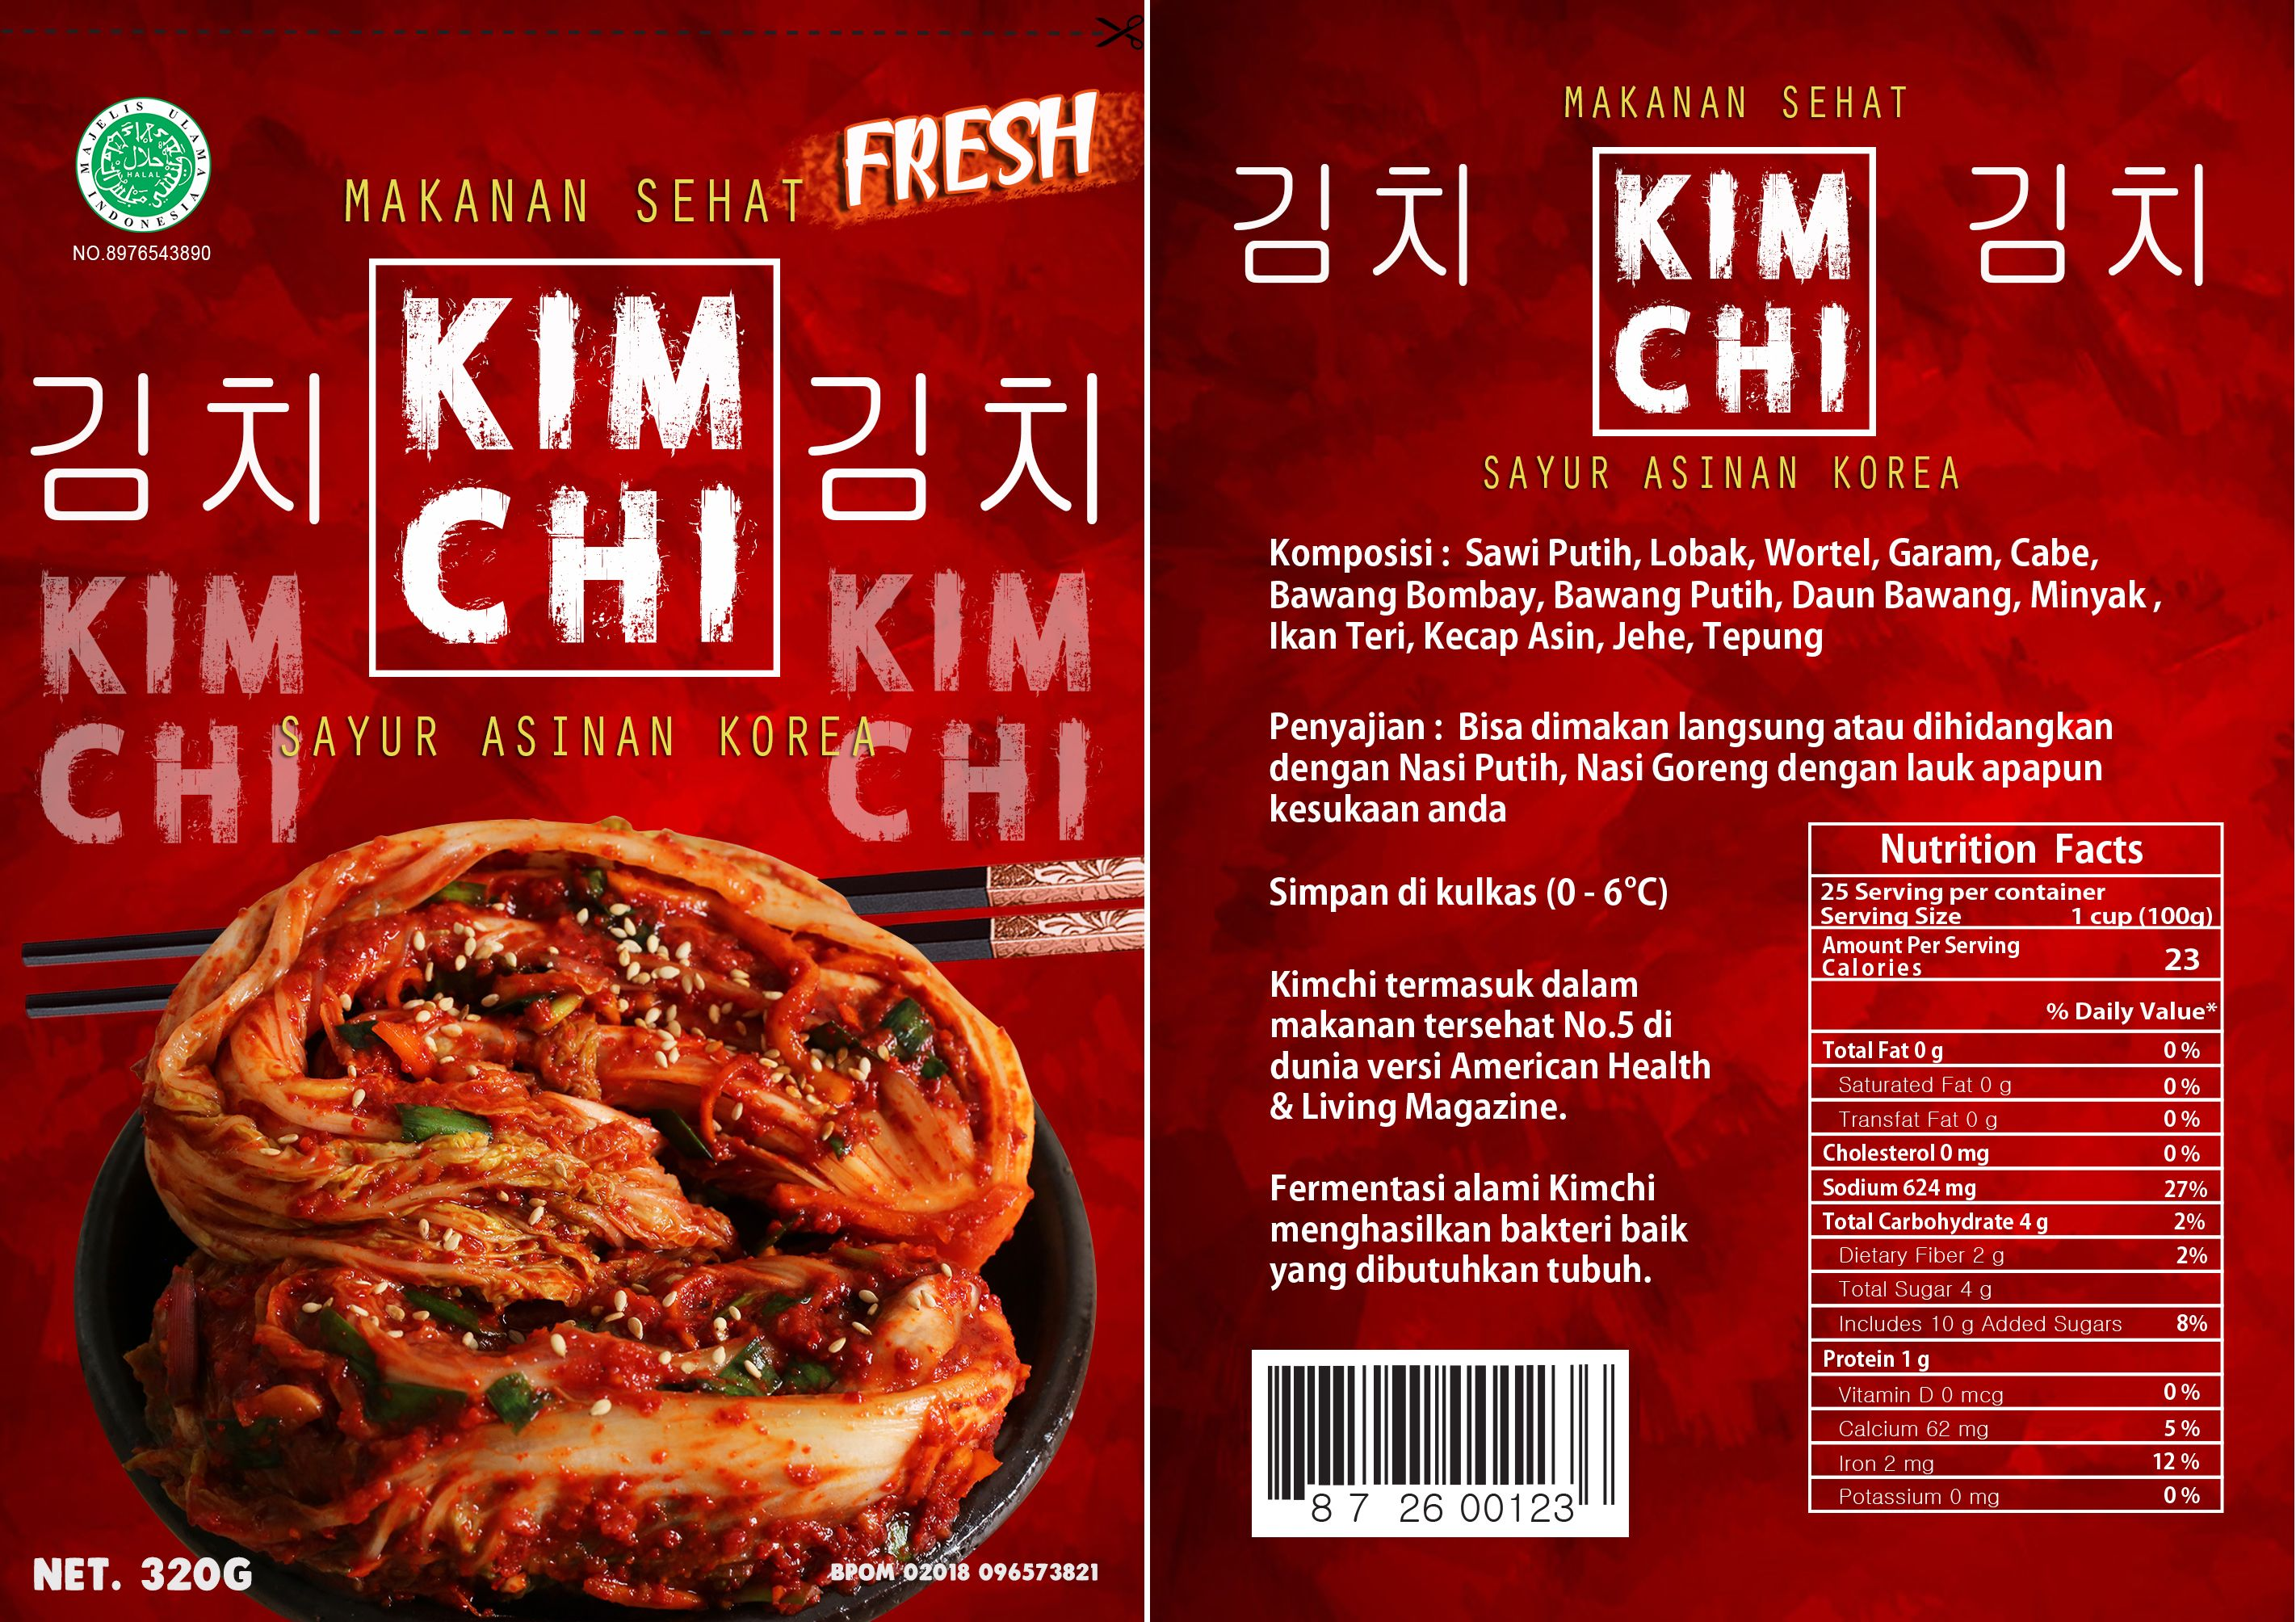 My New Kim Chi Design Packaging 2018 Food Packaging Food Packaging Design Food